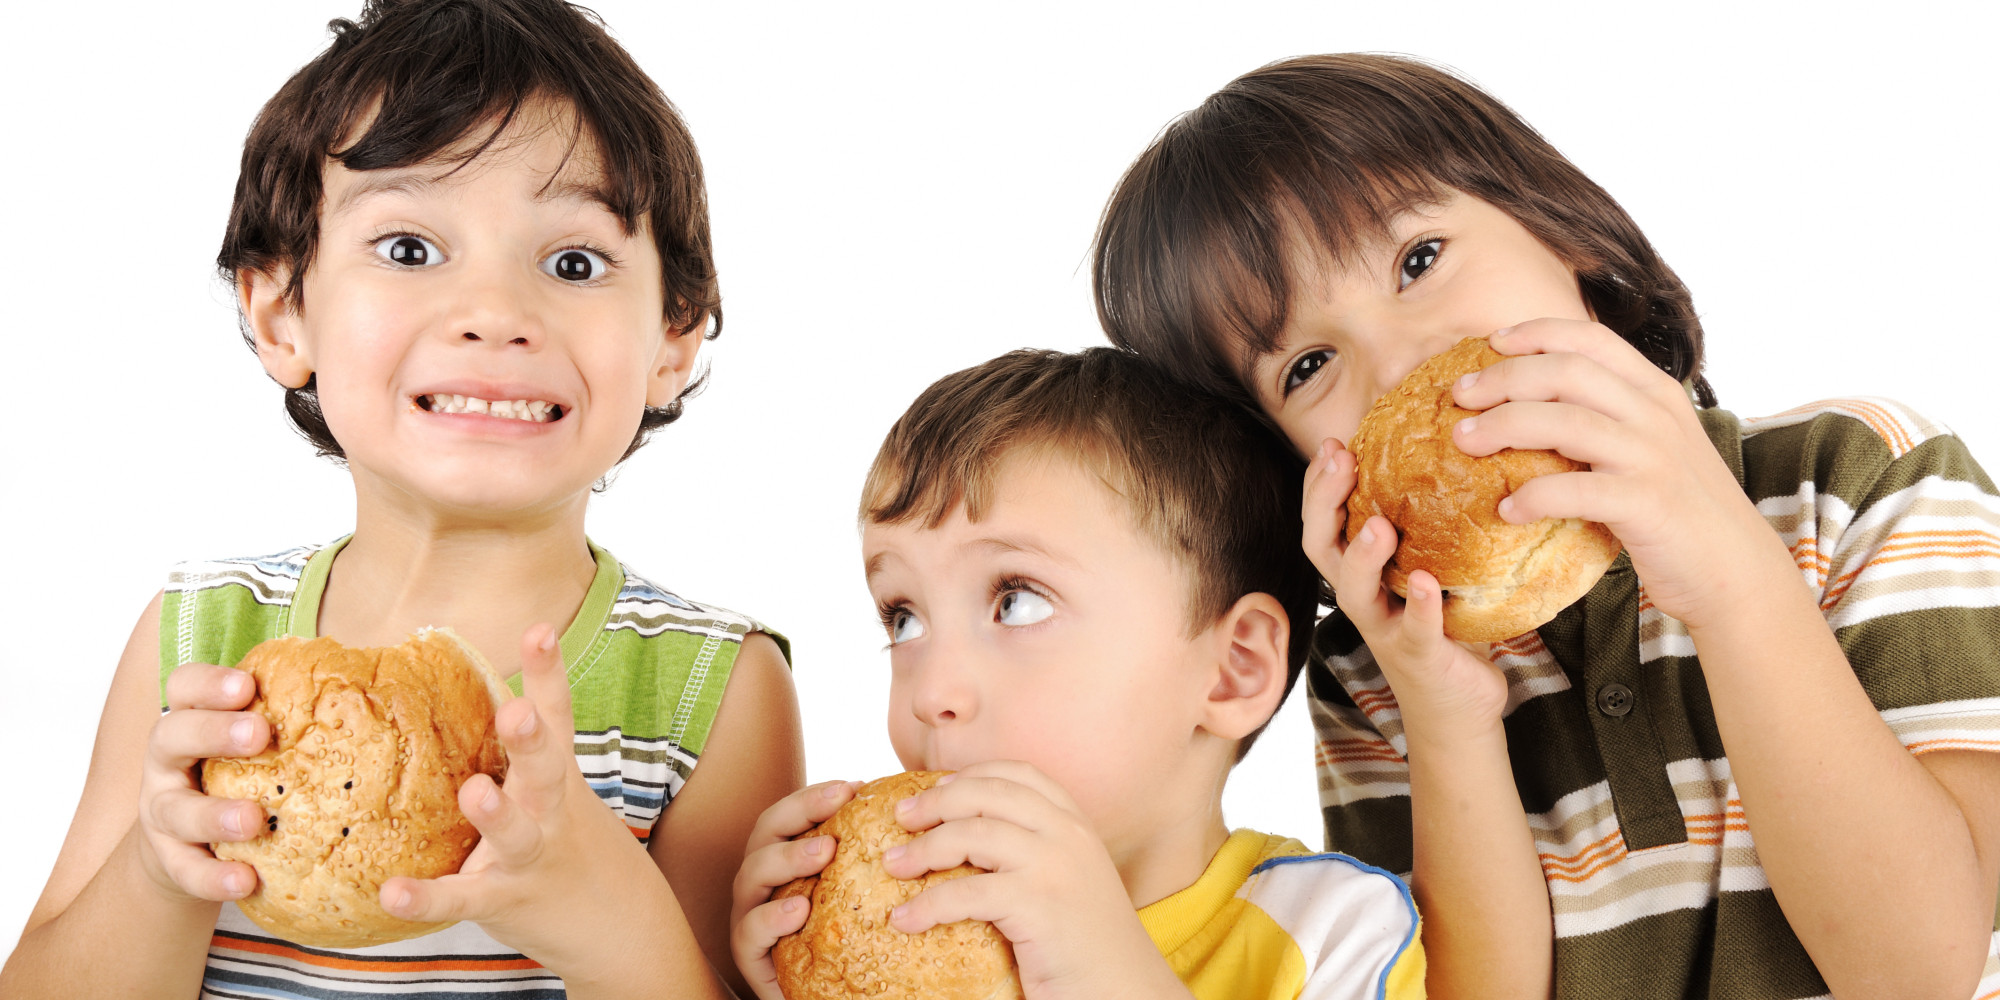 My Kids Eat Chicken Nuggets And Other Parenting